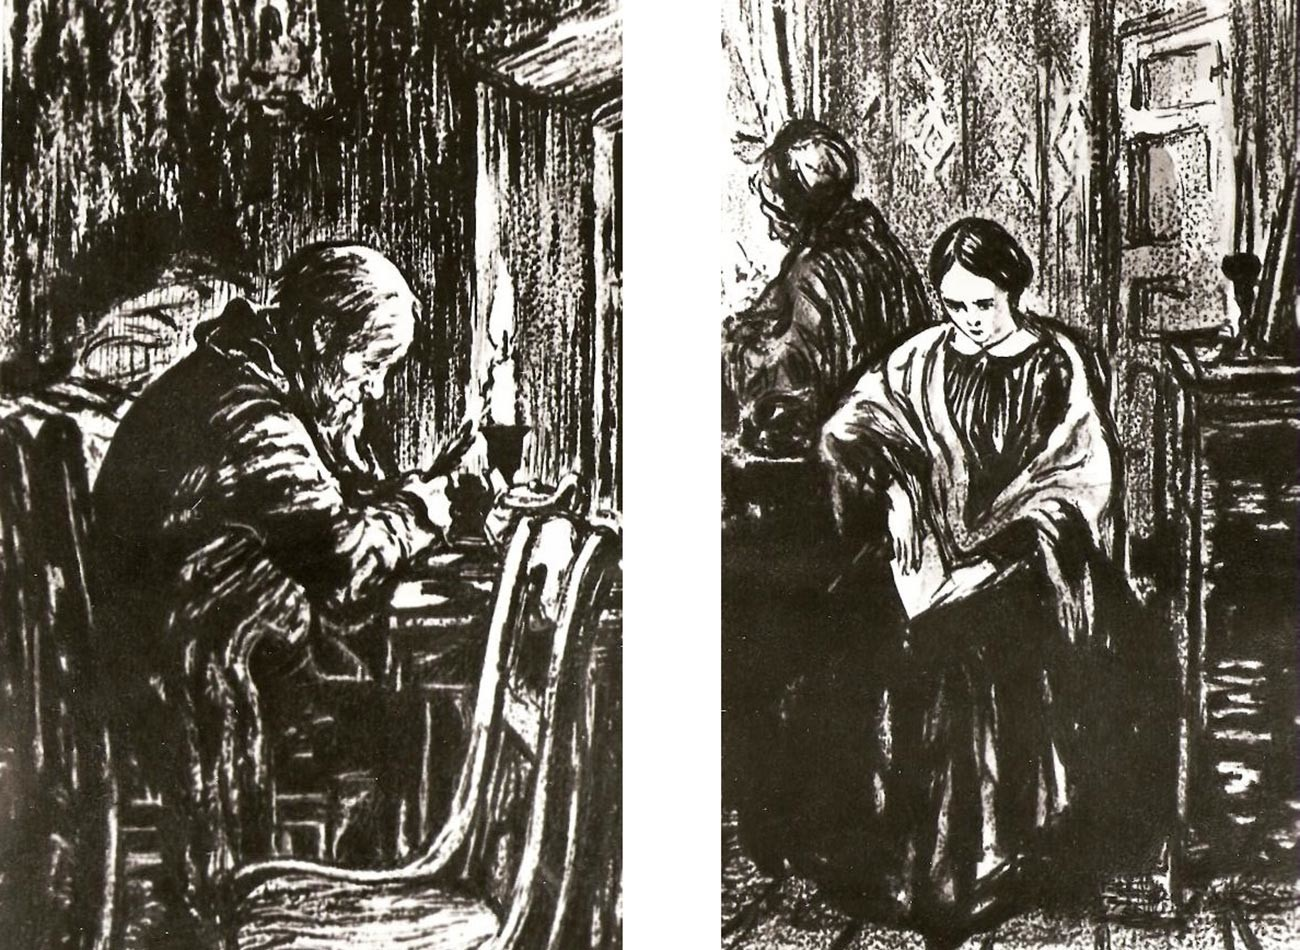 Illustration for 'Poor Folk' by Fyodor Dostoyevsky